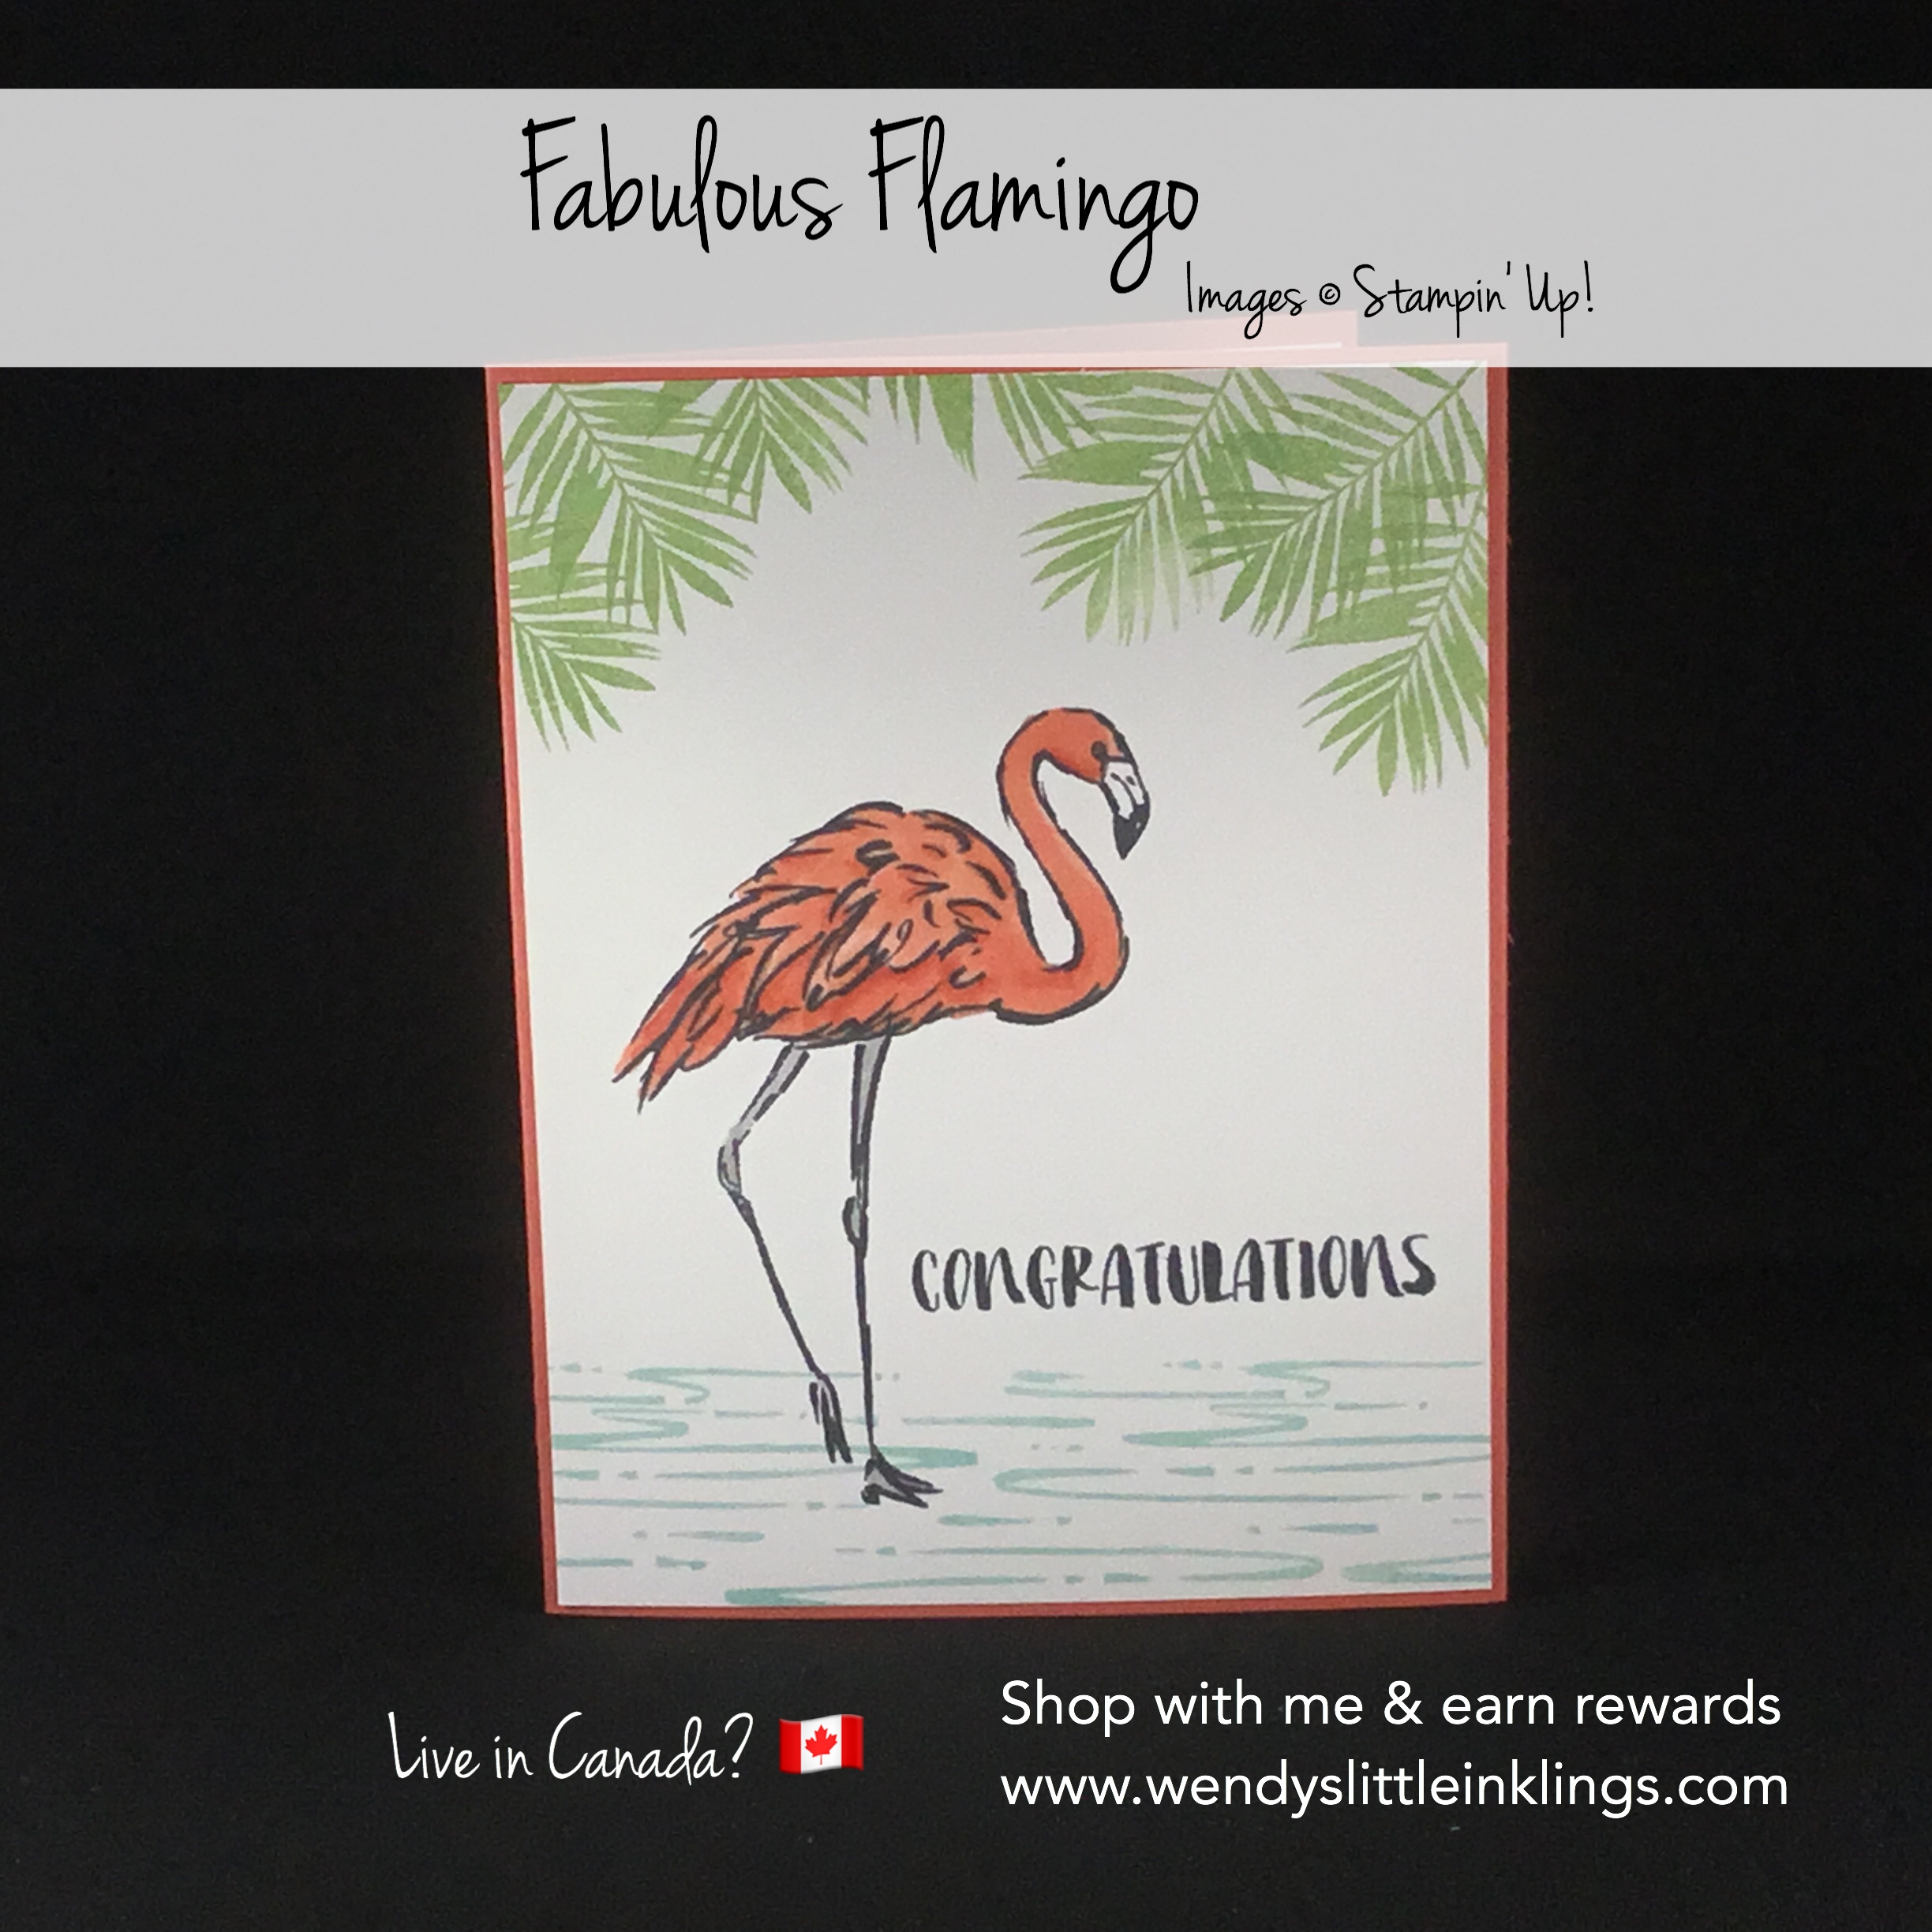 colouring-the-fabulous-flamingo-with-stampin-blends